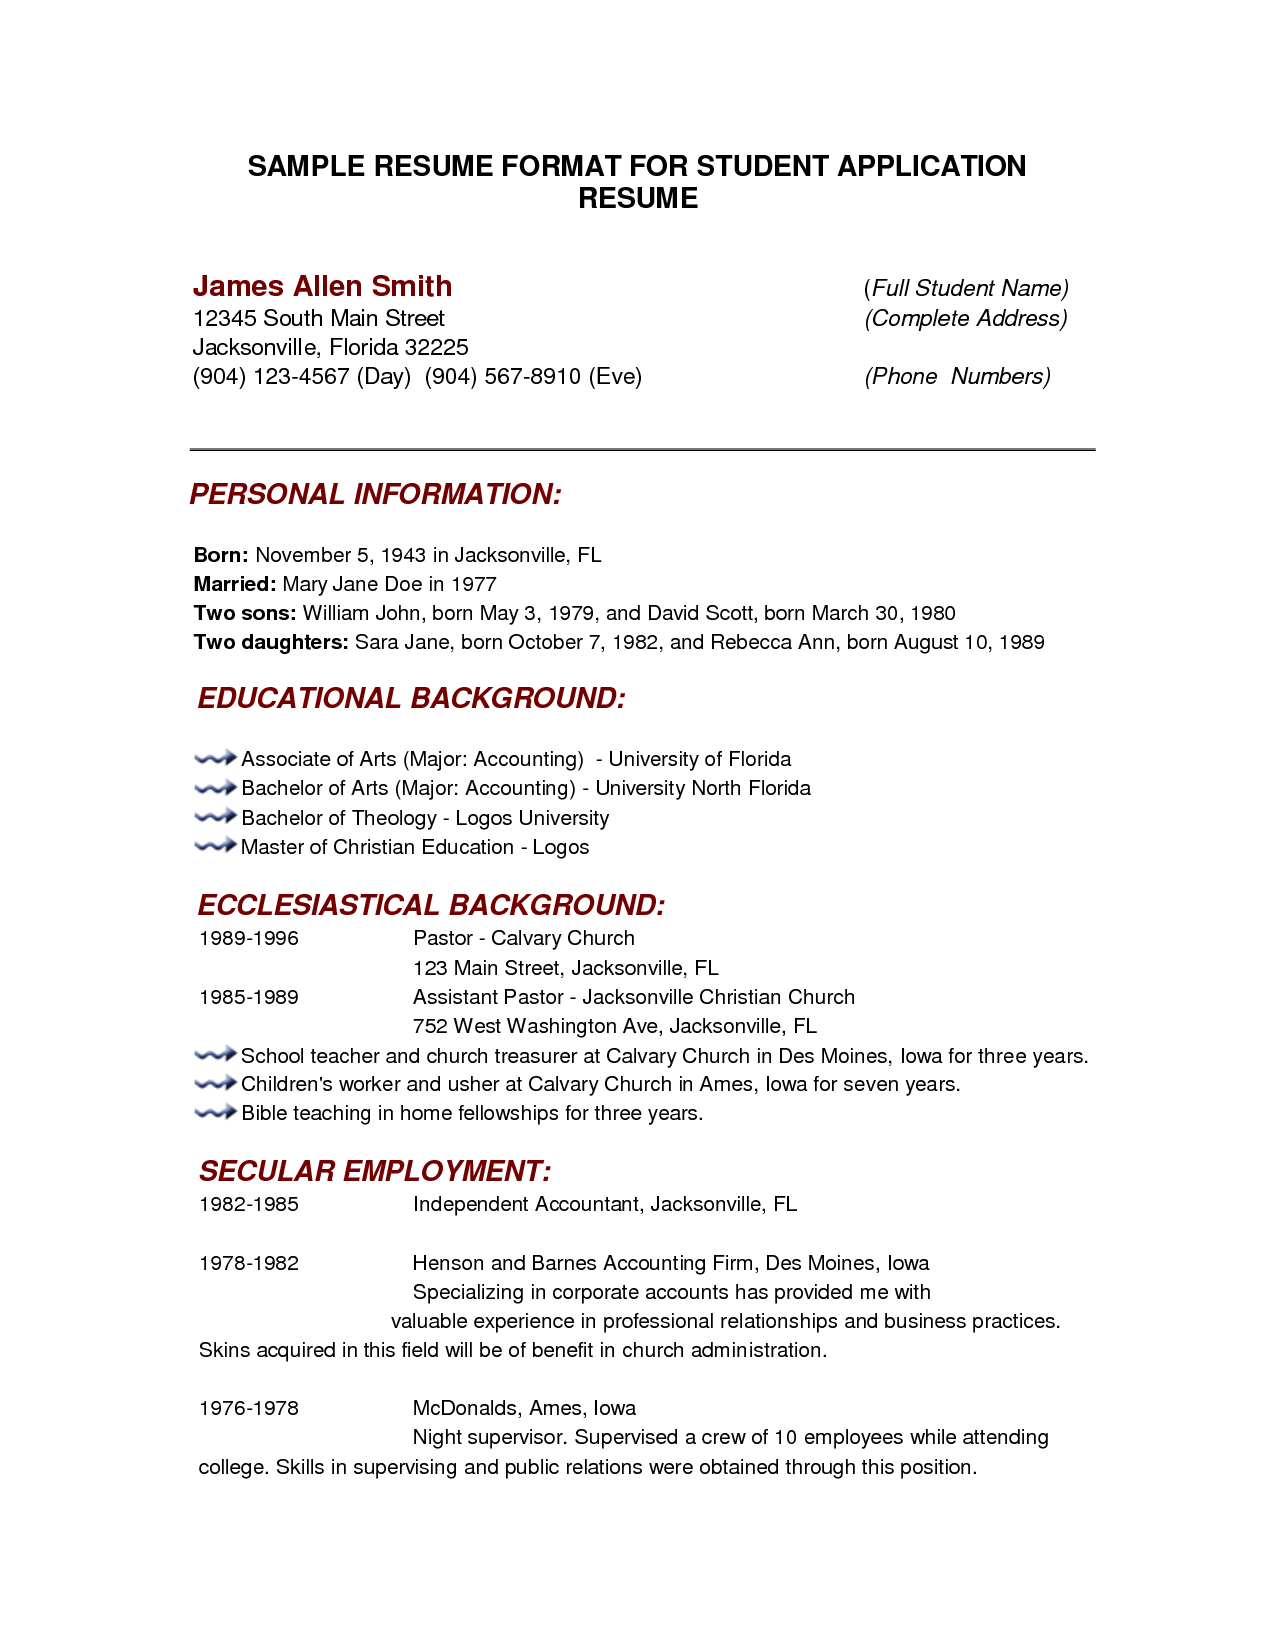 Resume Format Template New Pinjobresume On Resume Career Termplate Free  Pinterest